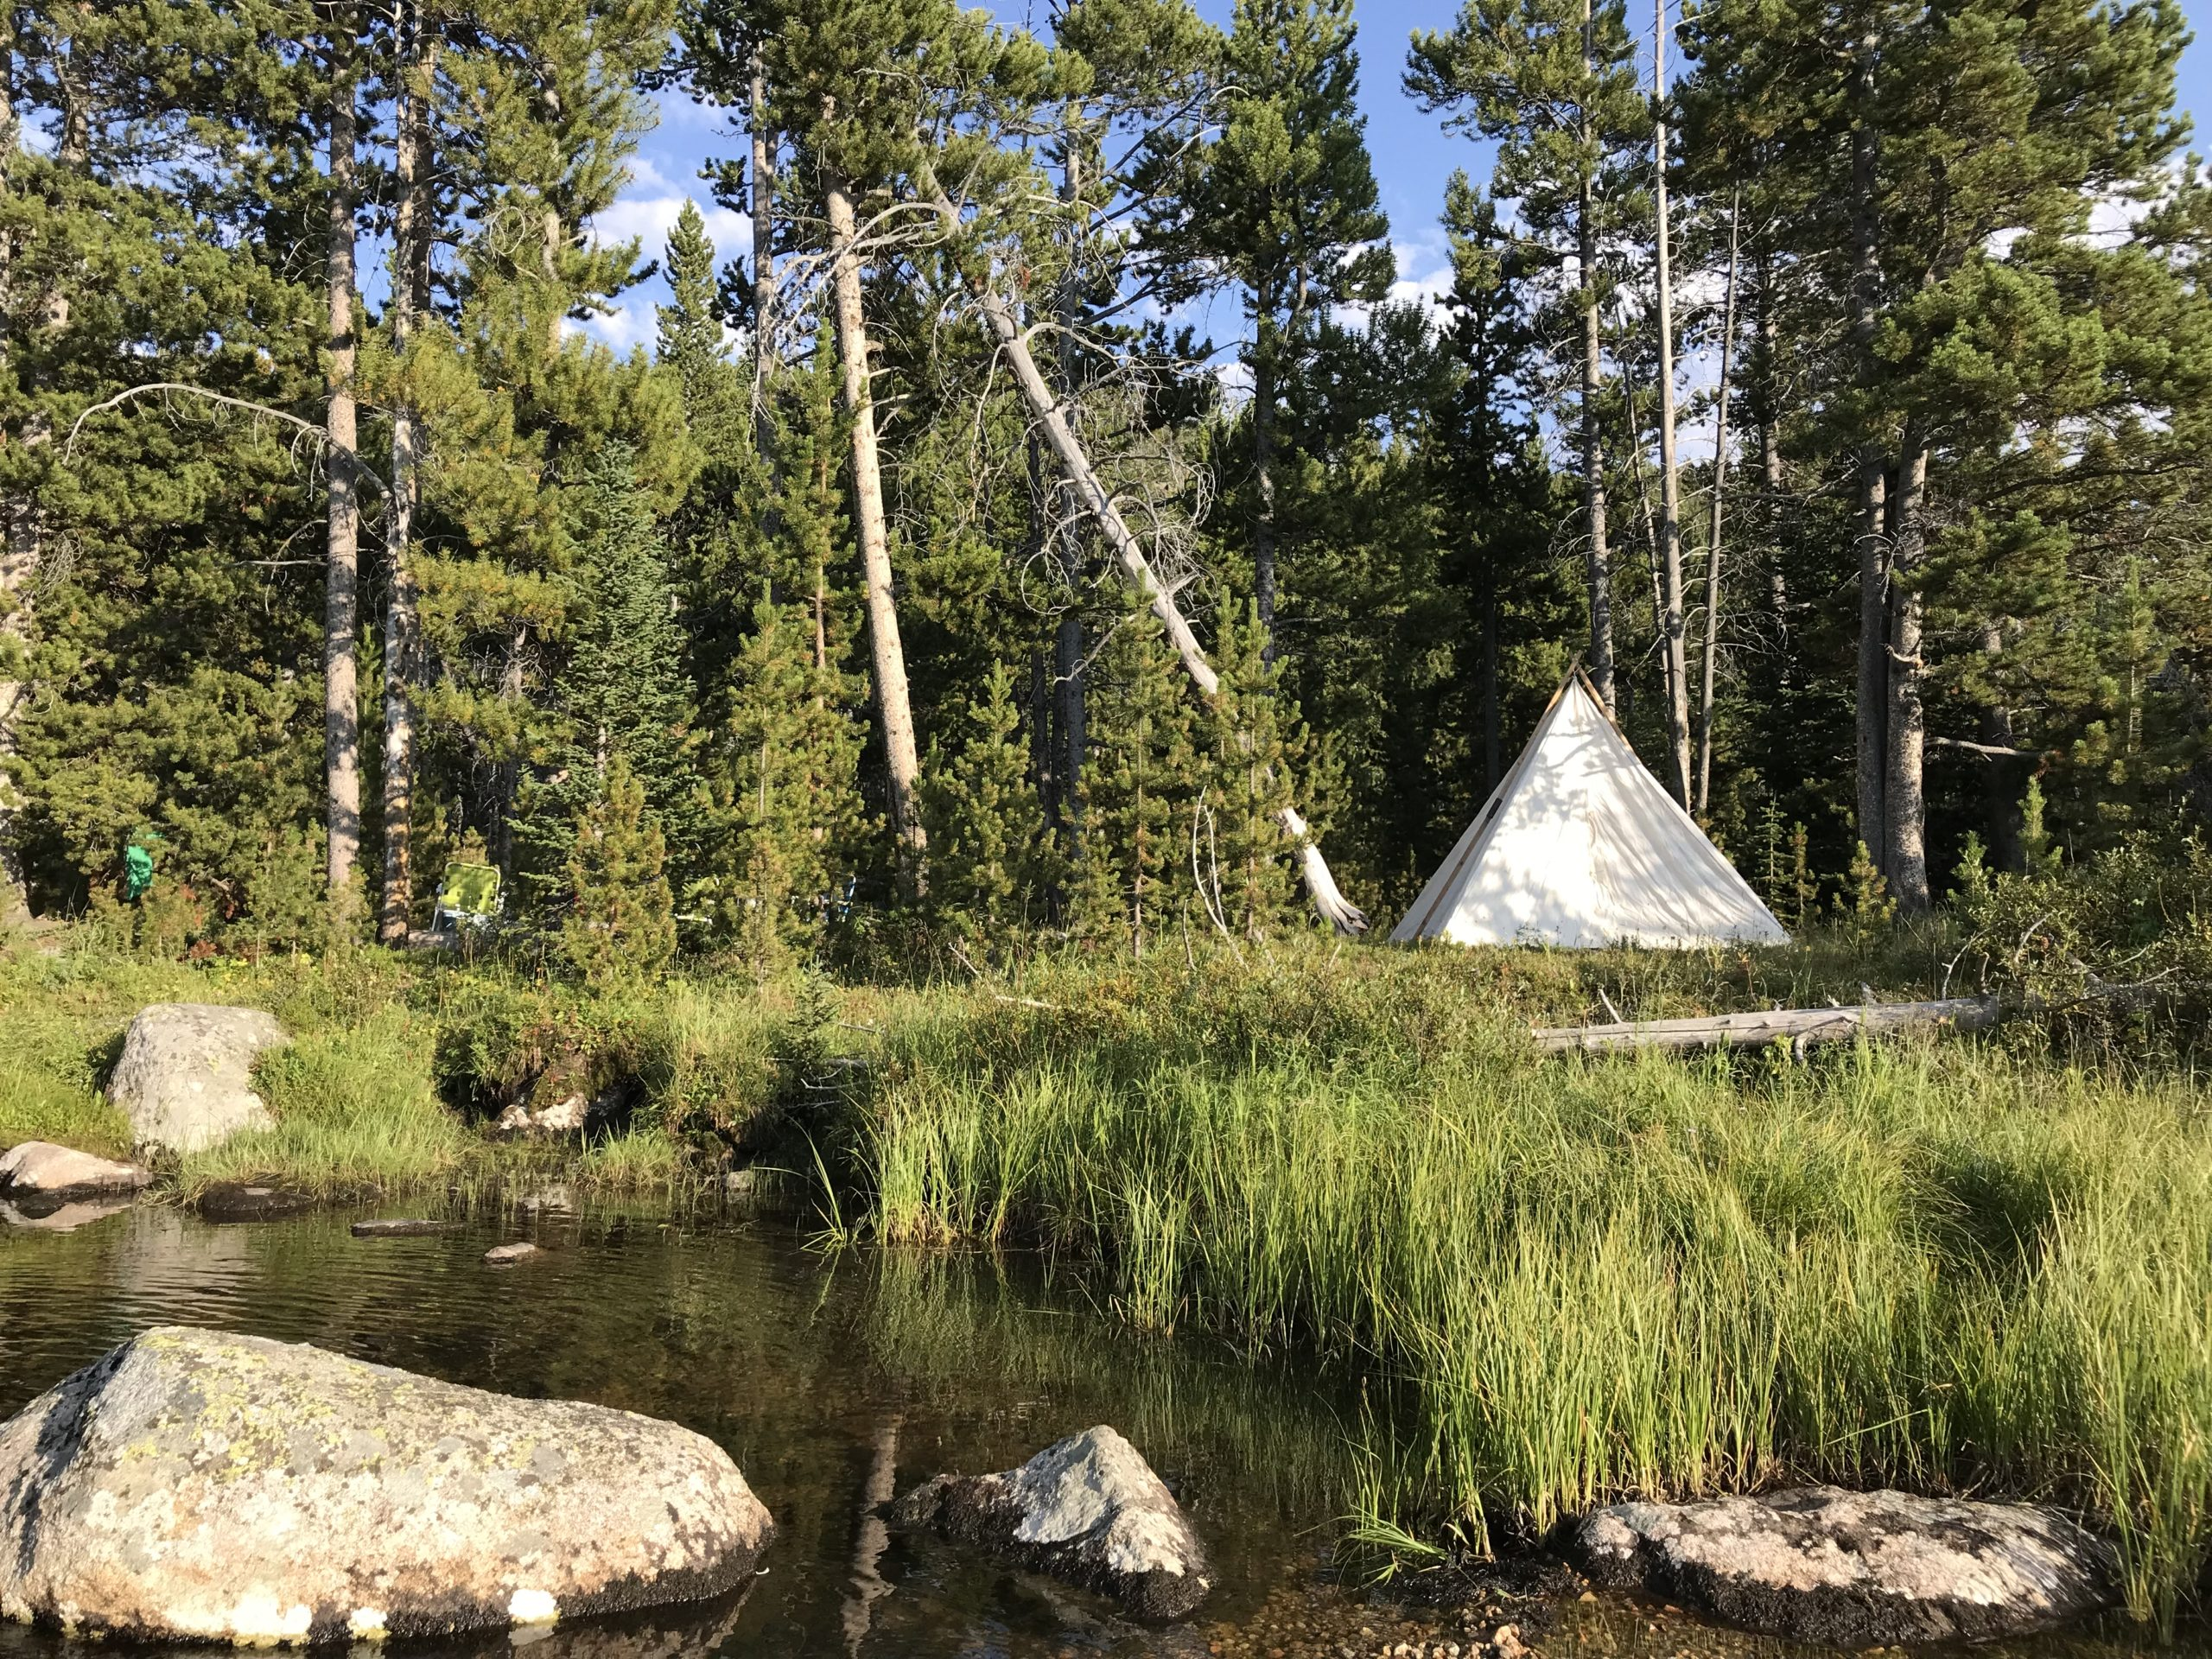 How to Safely Observe Animals While Out Camping